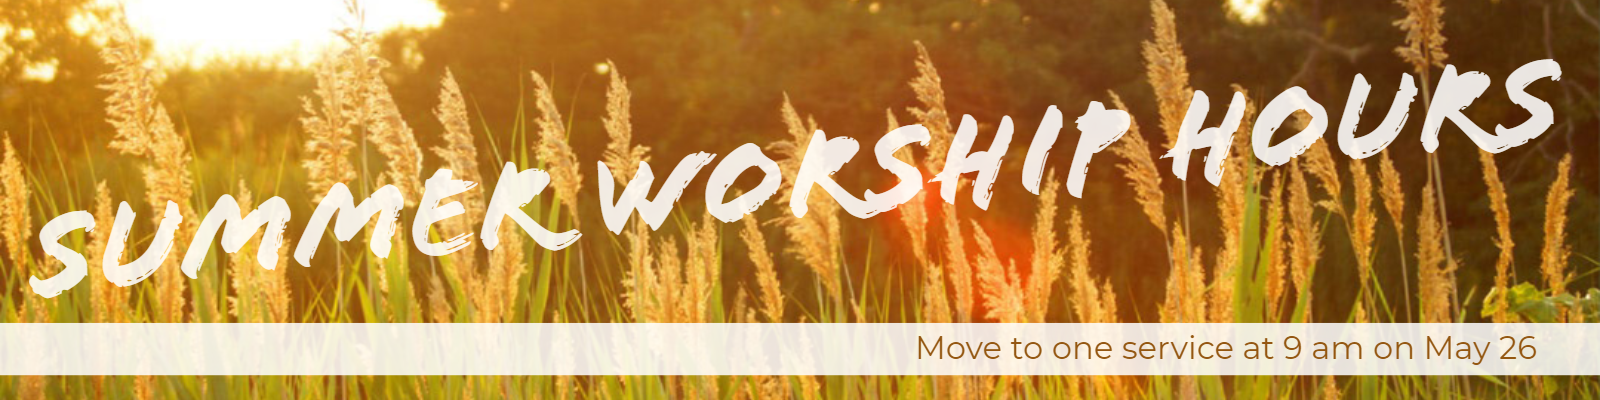 Join us as we move to one service once again this summer at St. John Ely at 9 am on Sundays